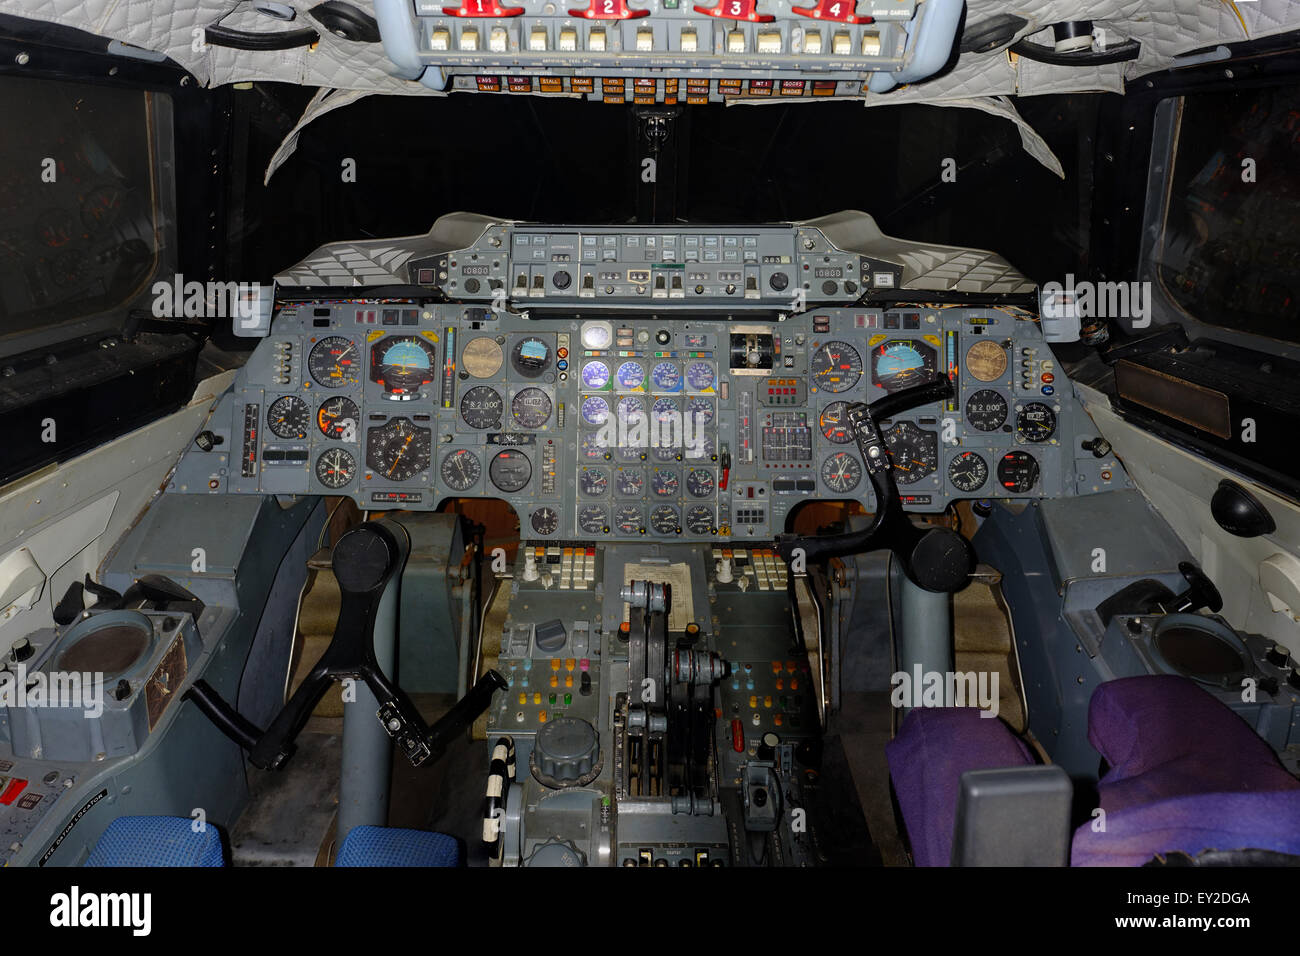 The original cockpit prototype used to help design the world's first supersonic passenger jet. Stock Photo